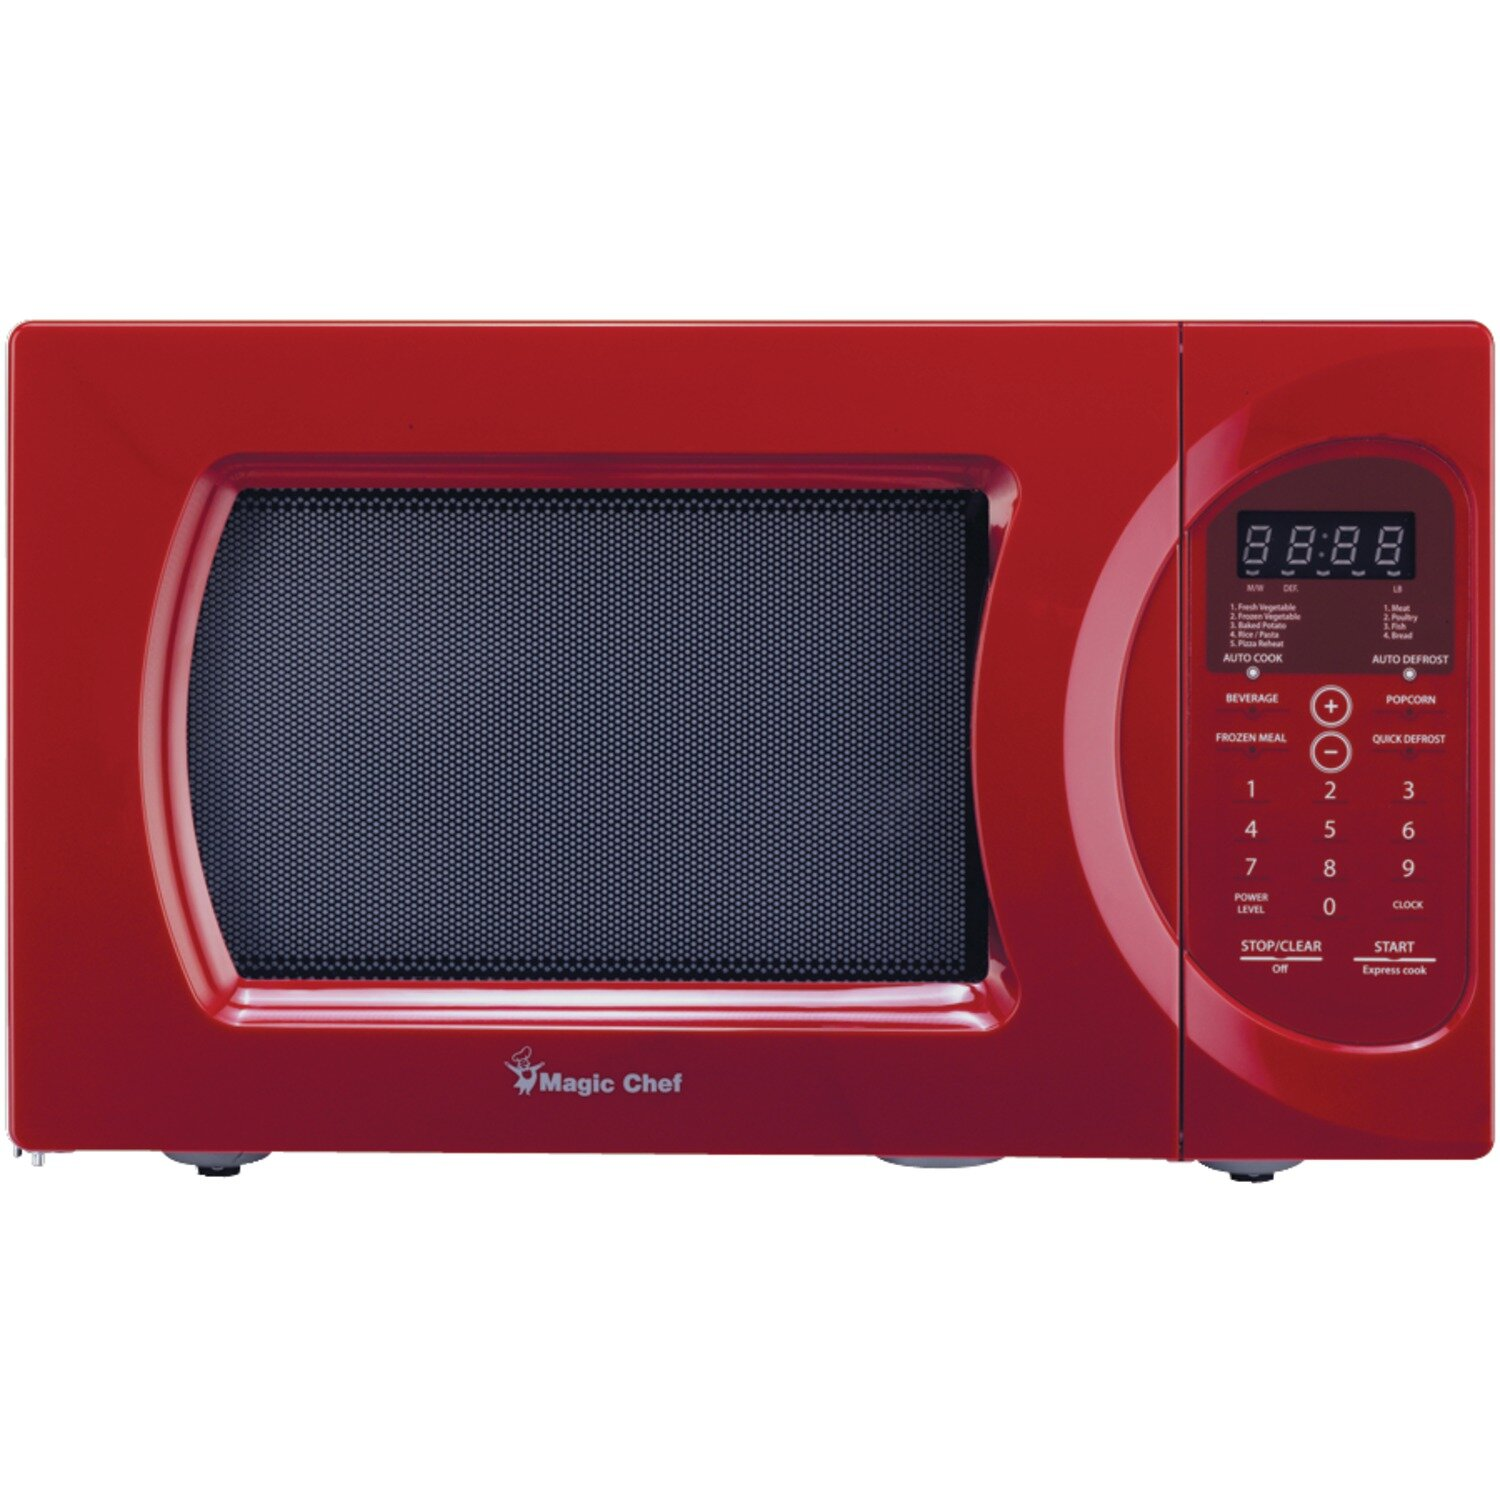 Countertop Microwave Sale Canada : ... Chef 0.9 cu. ft. 900W Countertop Microwave & Reviews Wayfair.ca